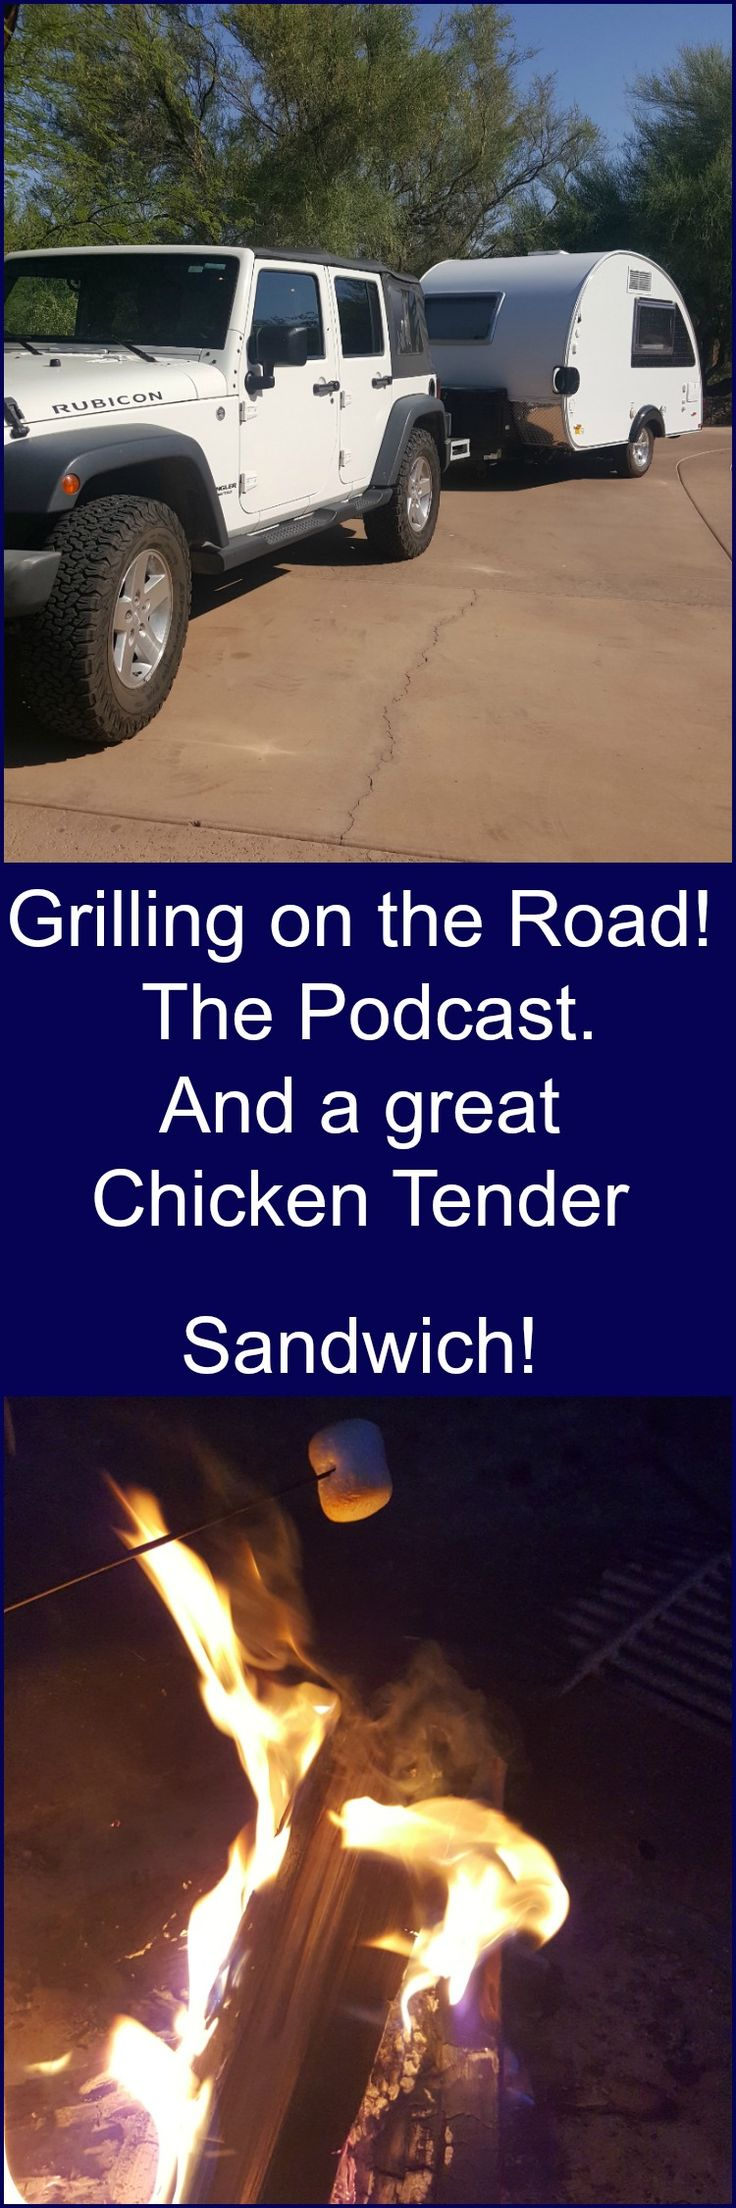 This 10 Minute Podcast has tips and tricks to help when you're grilling on the road! #Camping #campfood #getoutside This will help too: http://amzn.to/29aT93B